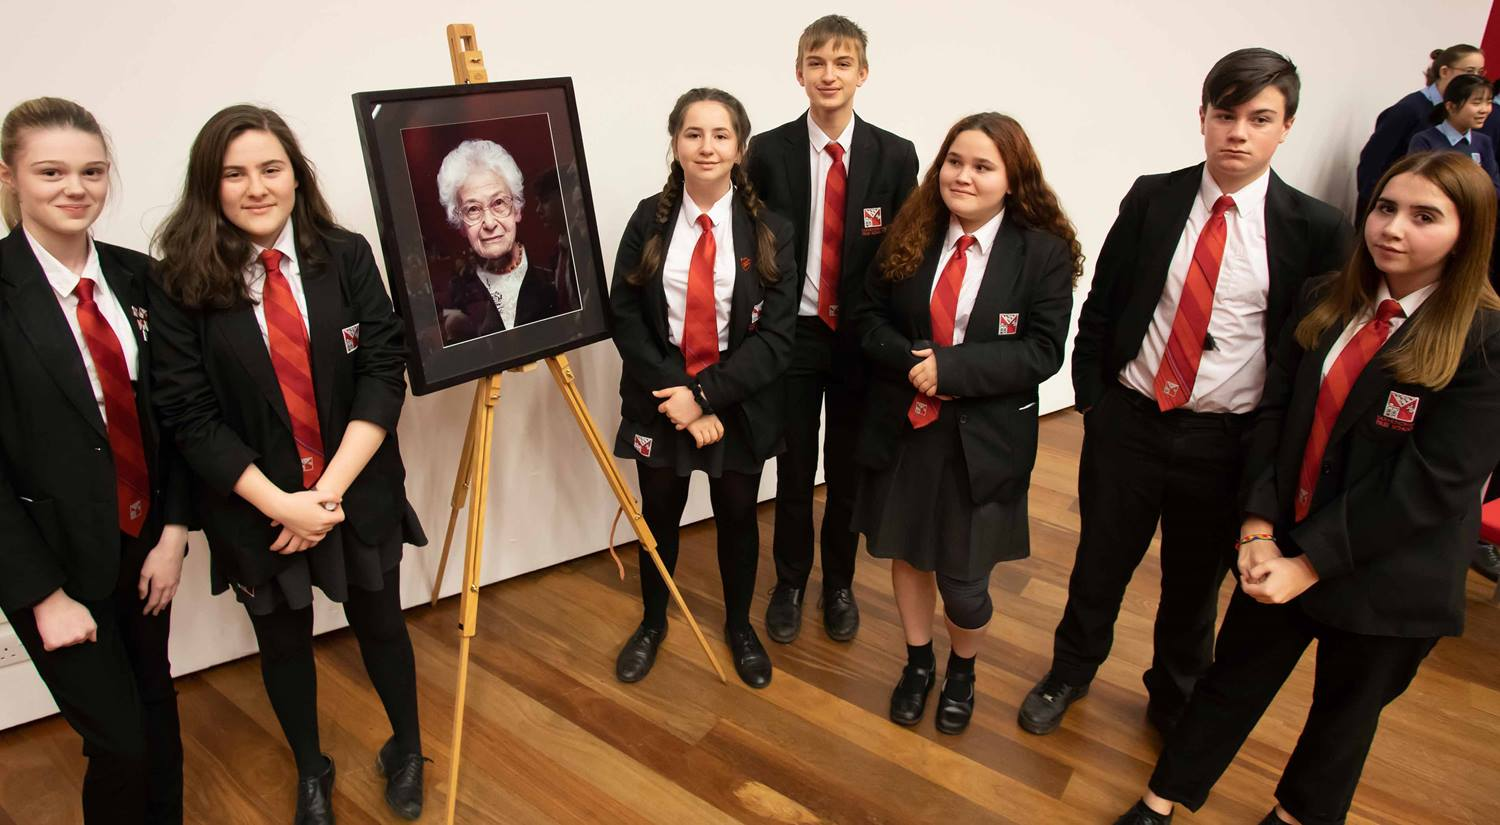 Dora Love Prize 2020 runners-up SET Saxmundham School, with a portrait of Dora Love